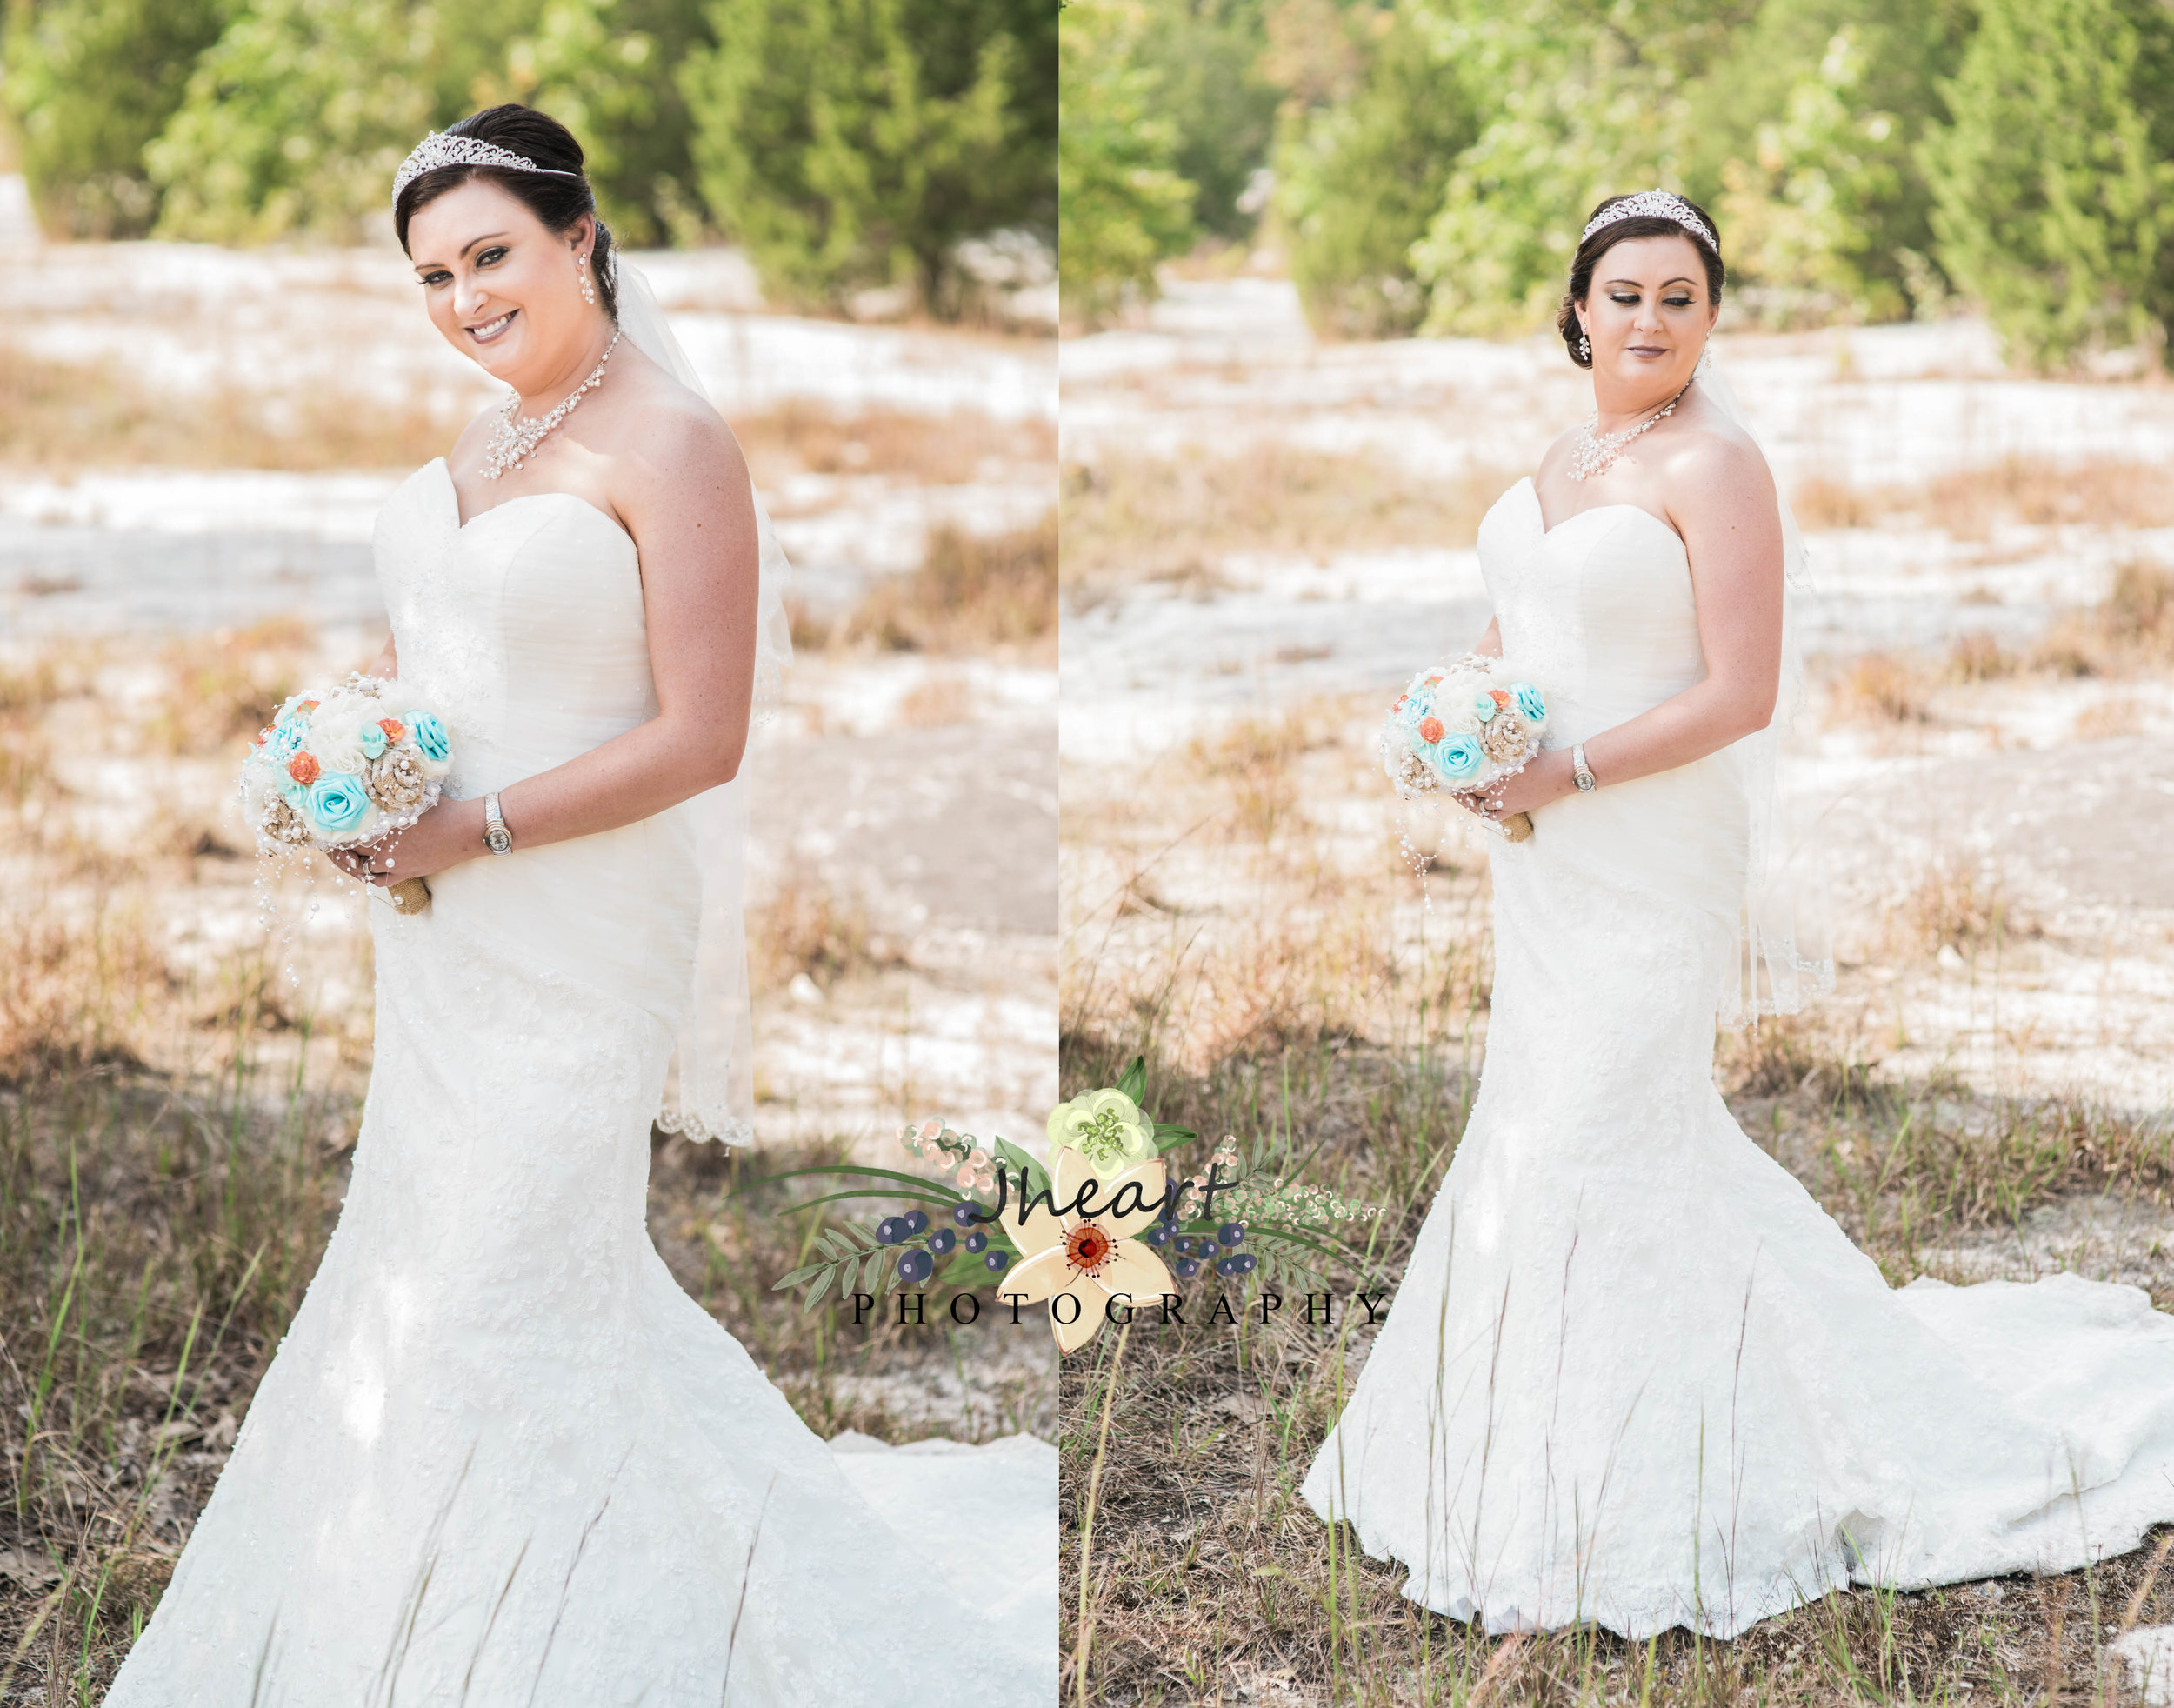 Bridal shoots are a perfect chance to get to wear that stunning gown one more day!